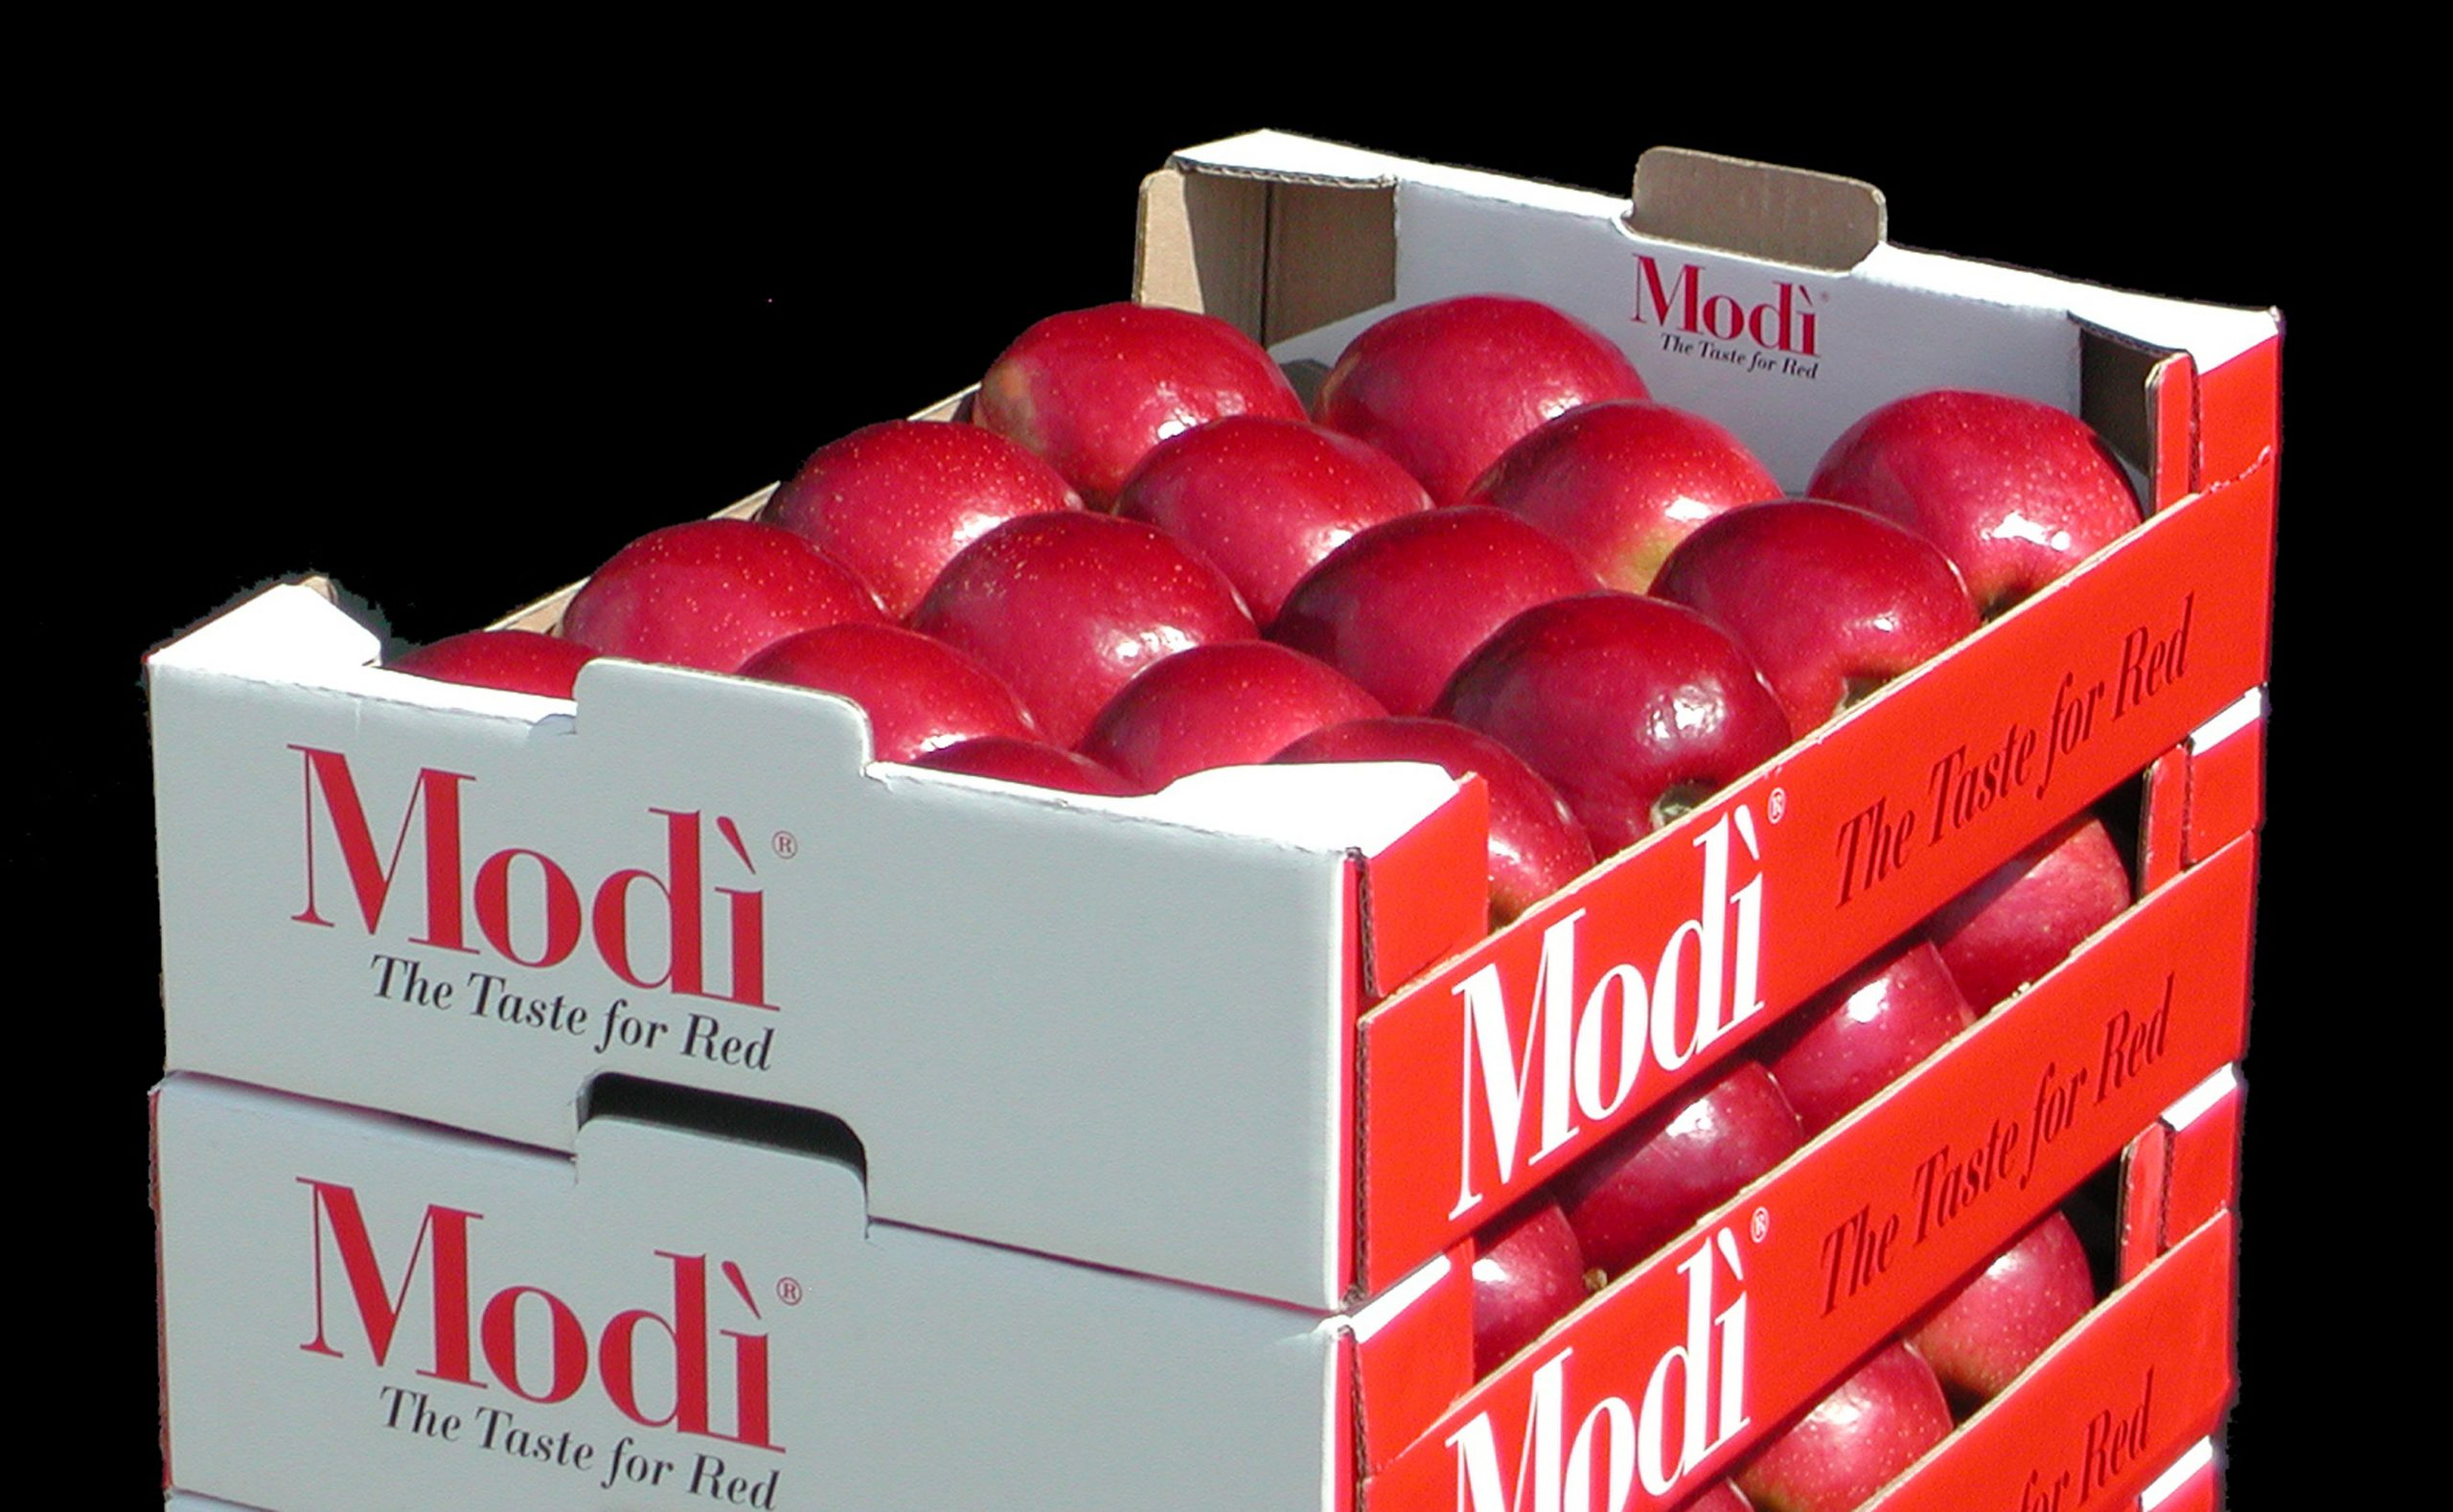 The farming plan aims to reach about 1,000 ha worldwide in the next few years – with roughly 80% located in the Northern Hemisphere – and global production of the variety reaching about 30.000 tons, thus achieving a favourable balance between supply and demand for Modi apples.